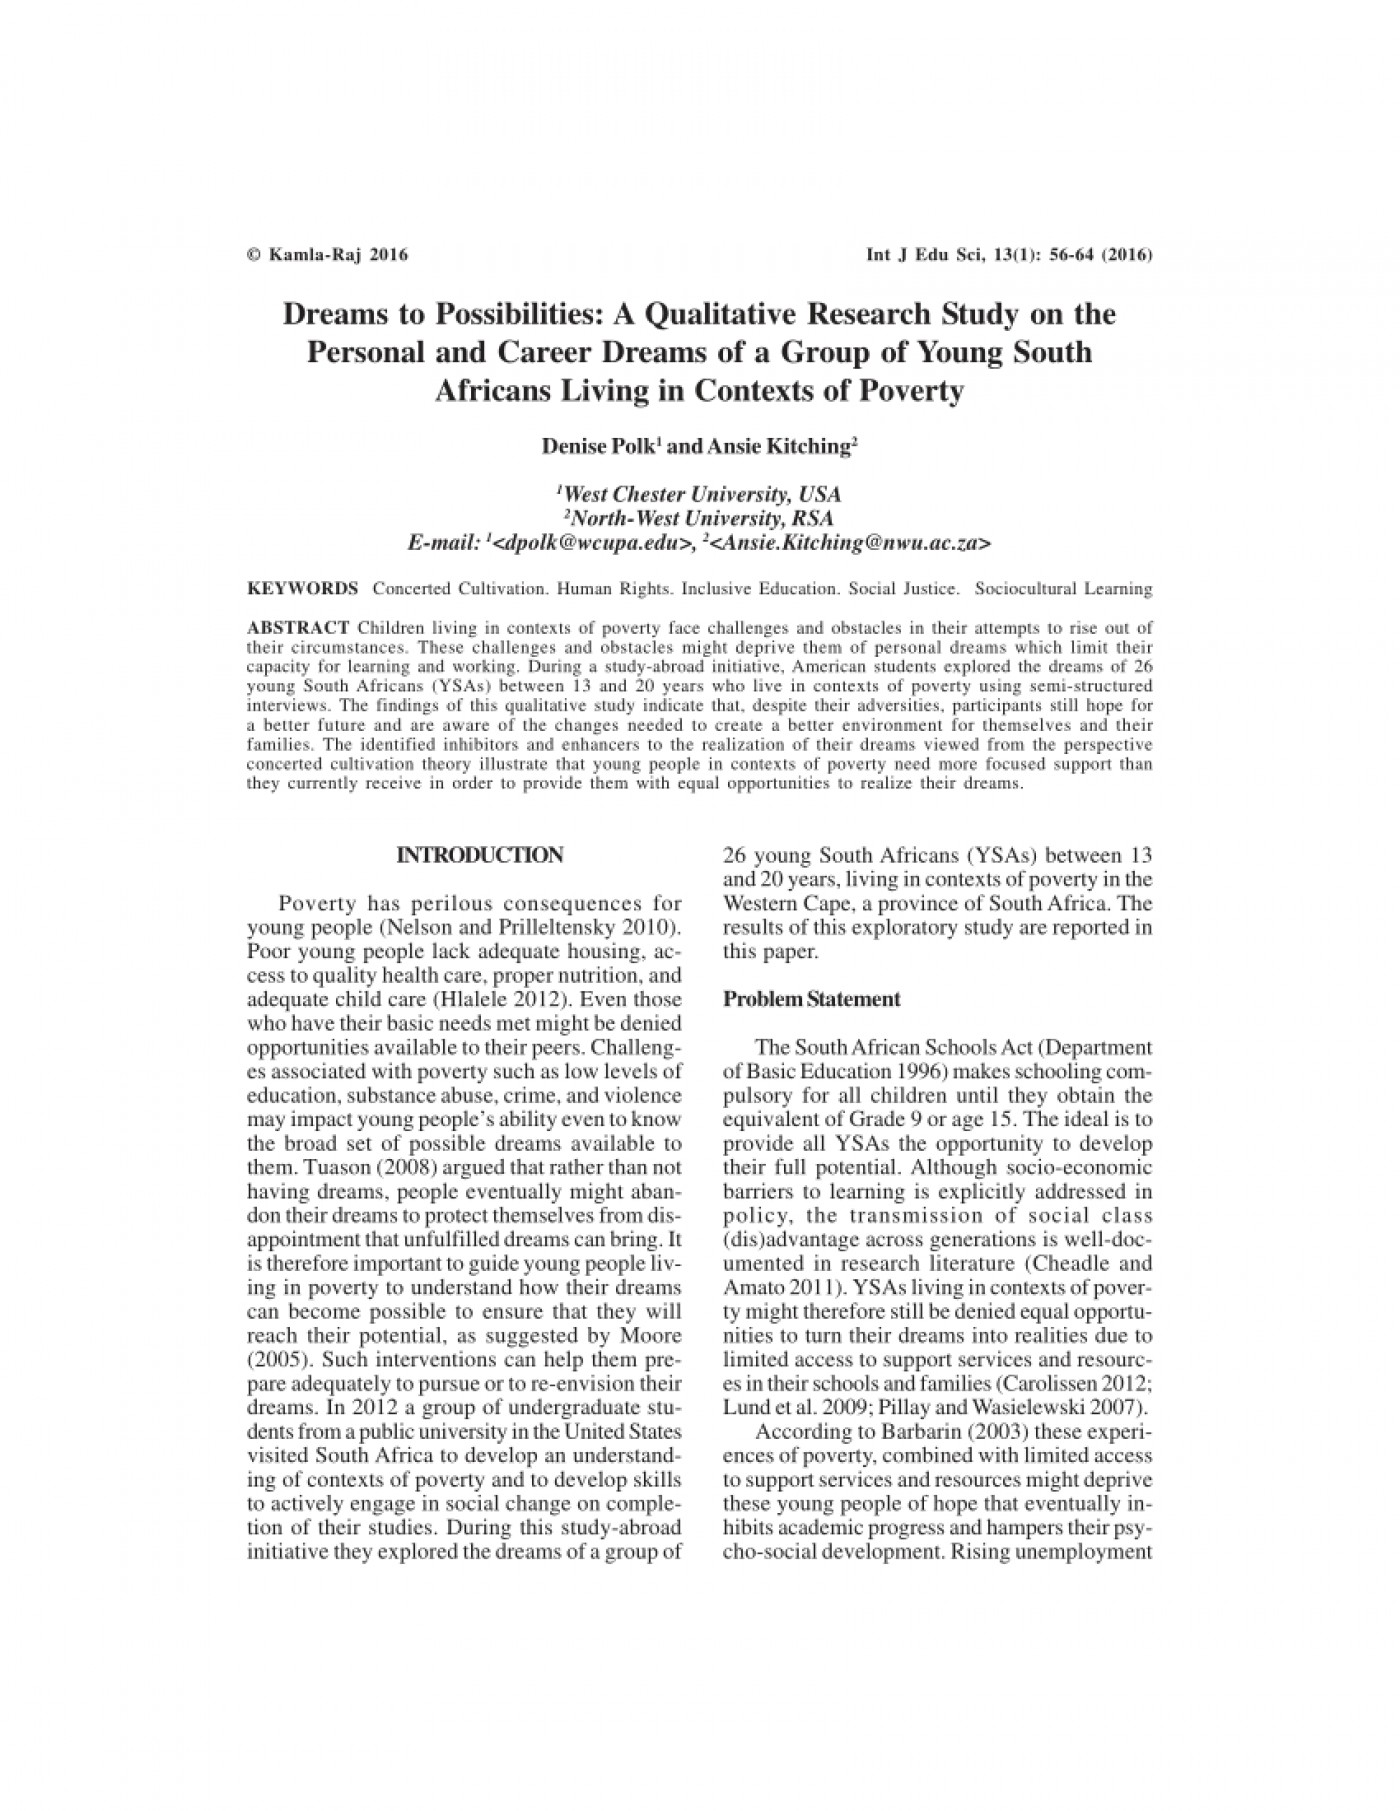 003 Poverty In The Philippines Research Paper Pdf Impressive 1400